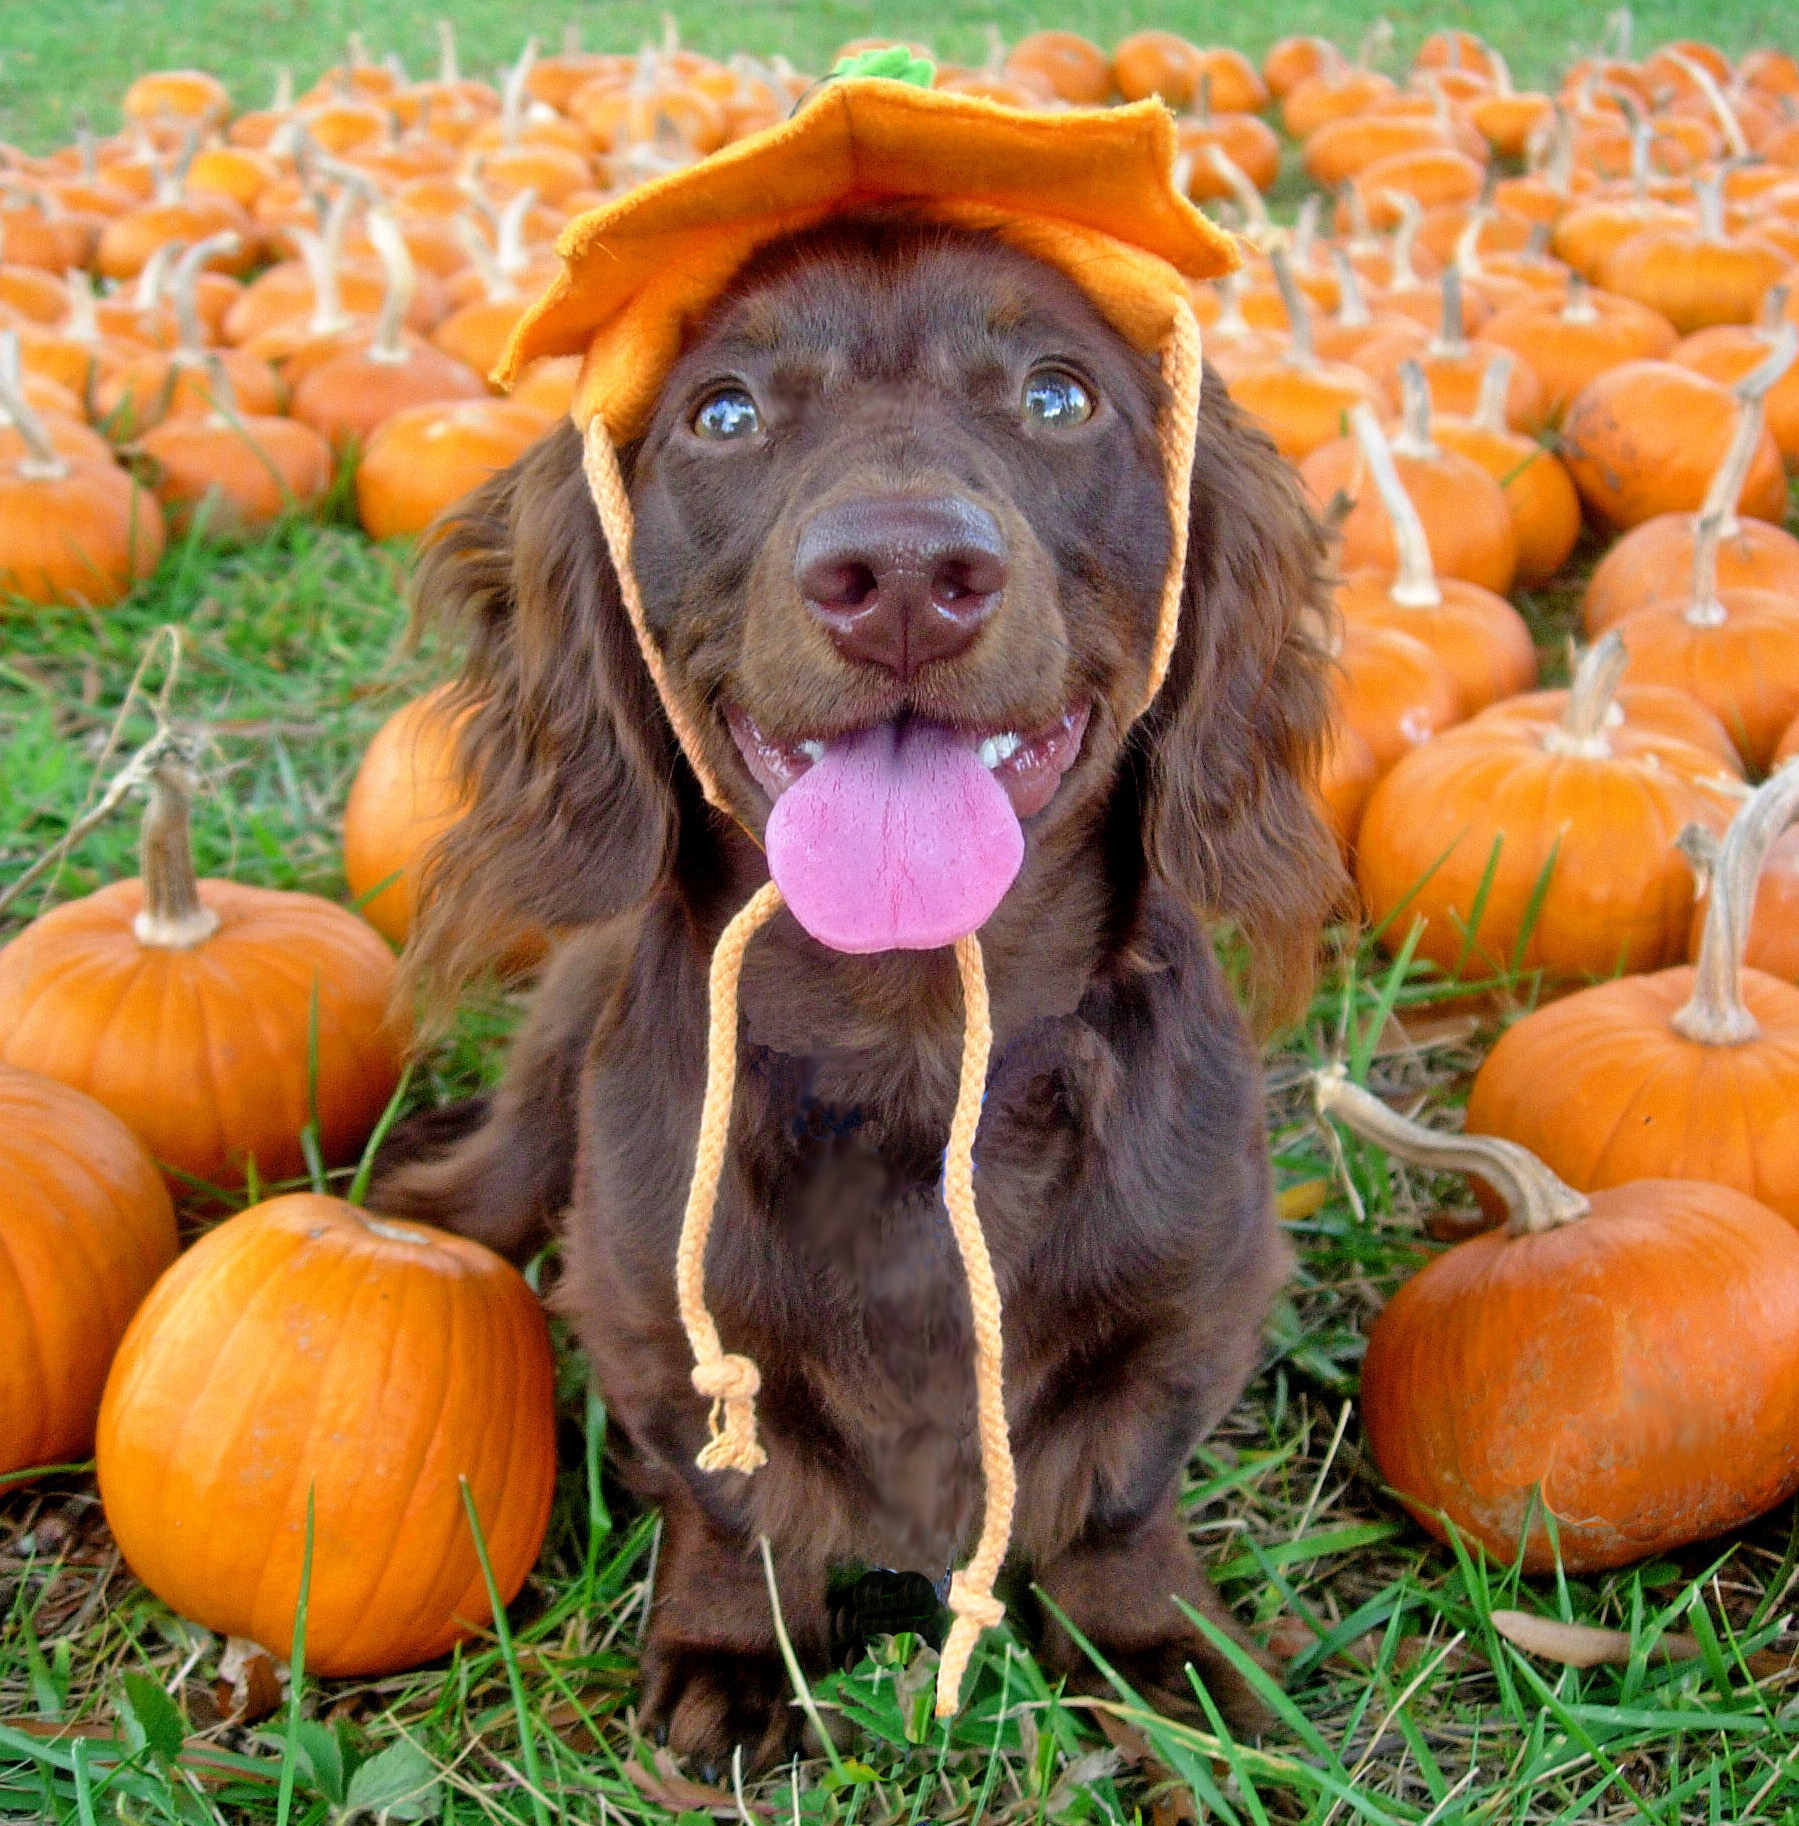 Dachshund puppy in pumpkin patch